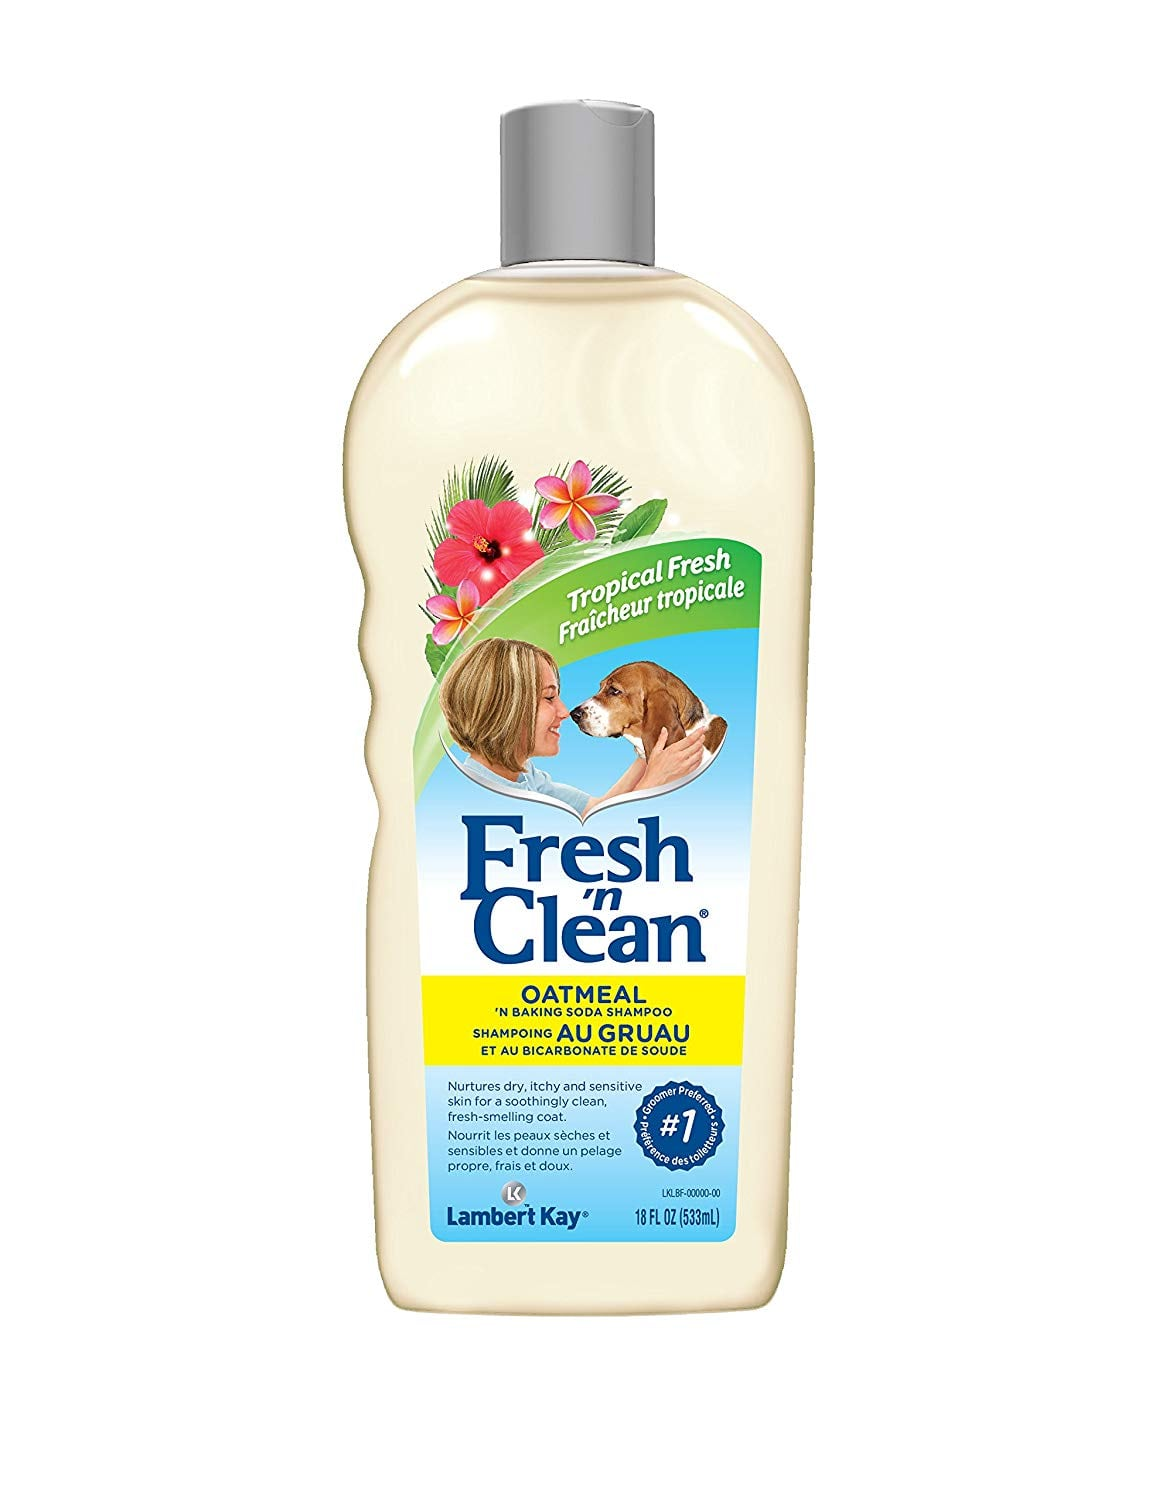 Lambert Kay Fresh 'n Clean Oatmeal 'N Baking Soda Shampoo Review by www.puppyurl.com